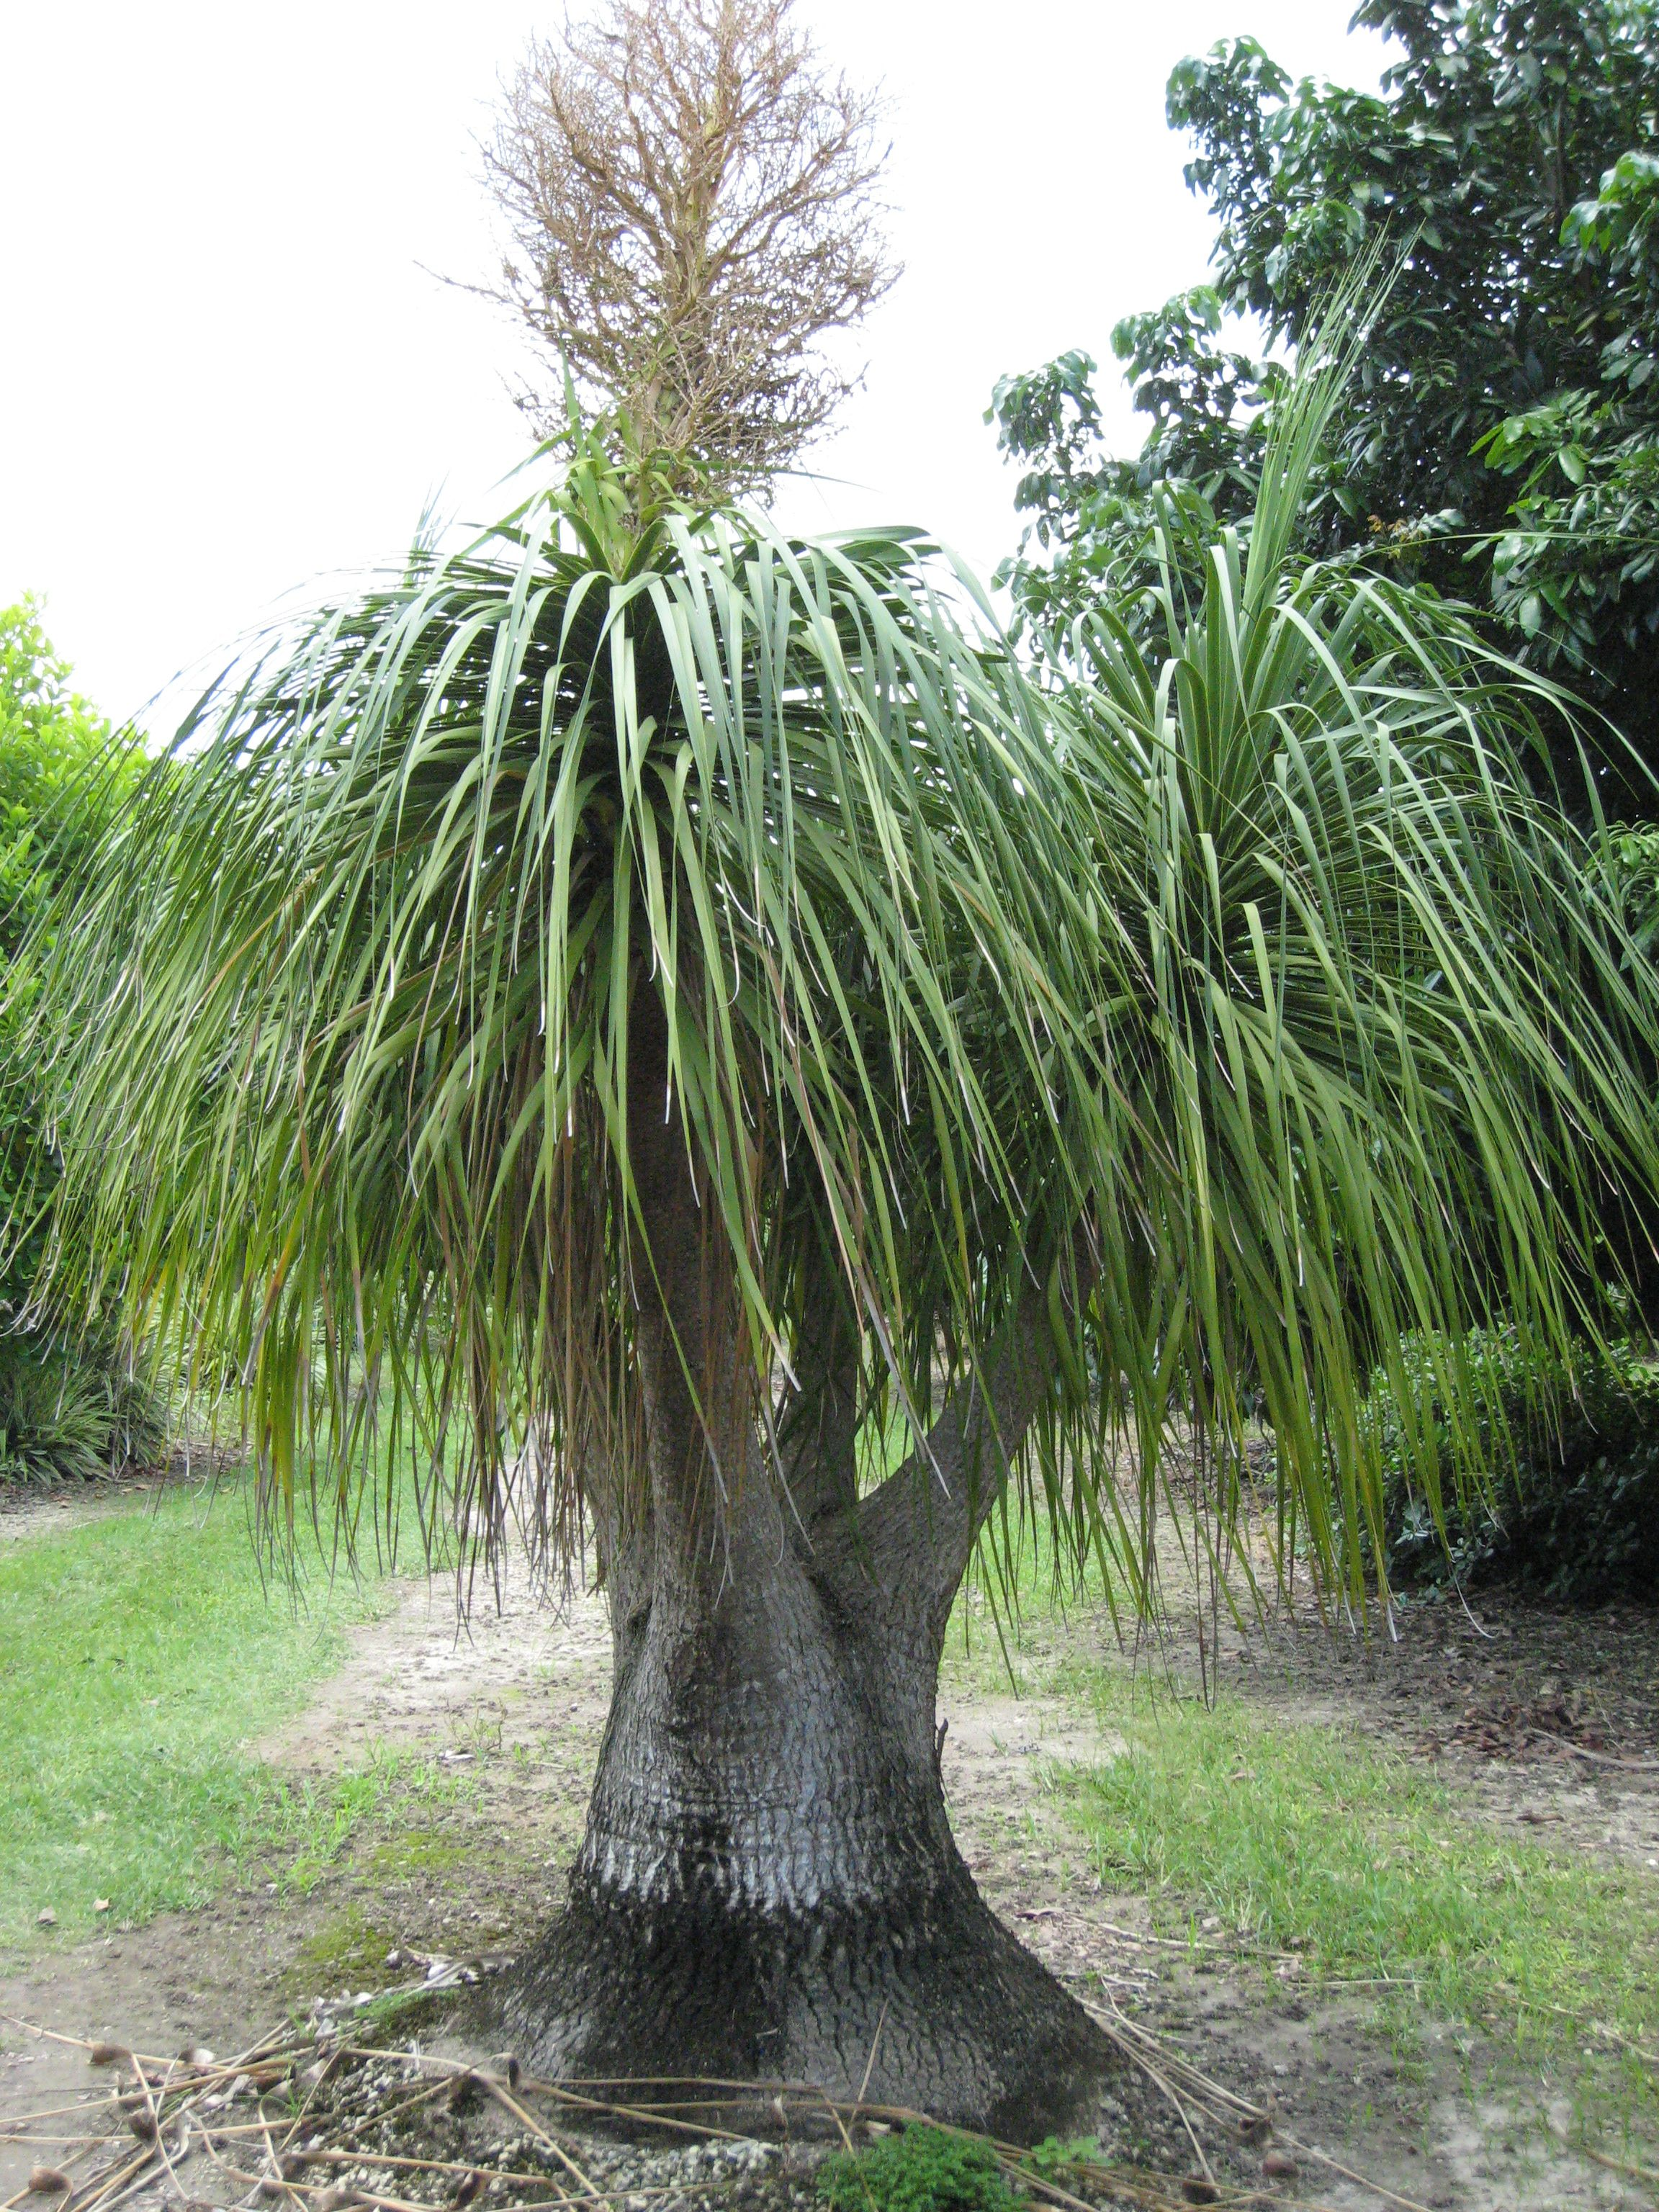 Beaucarnea Recurvata (Bottle Palm) Is A Species Of Plant In